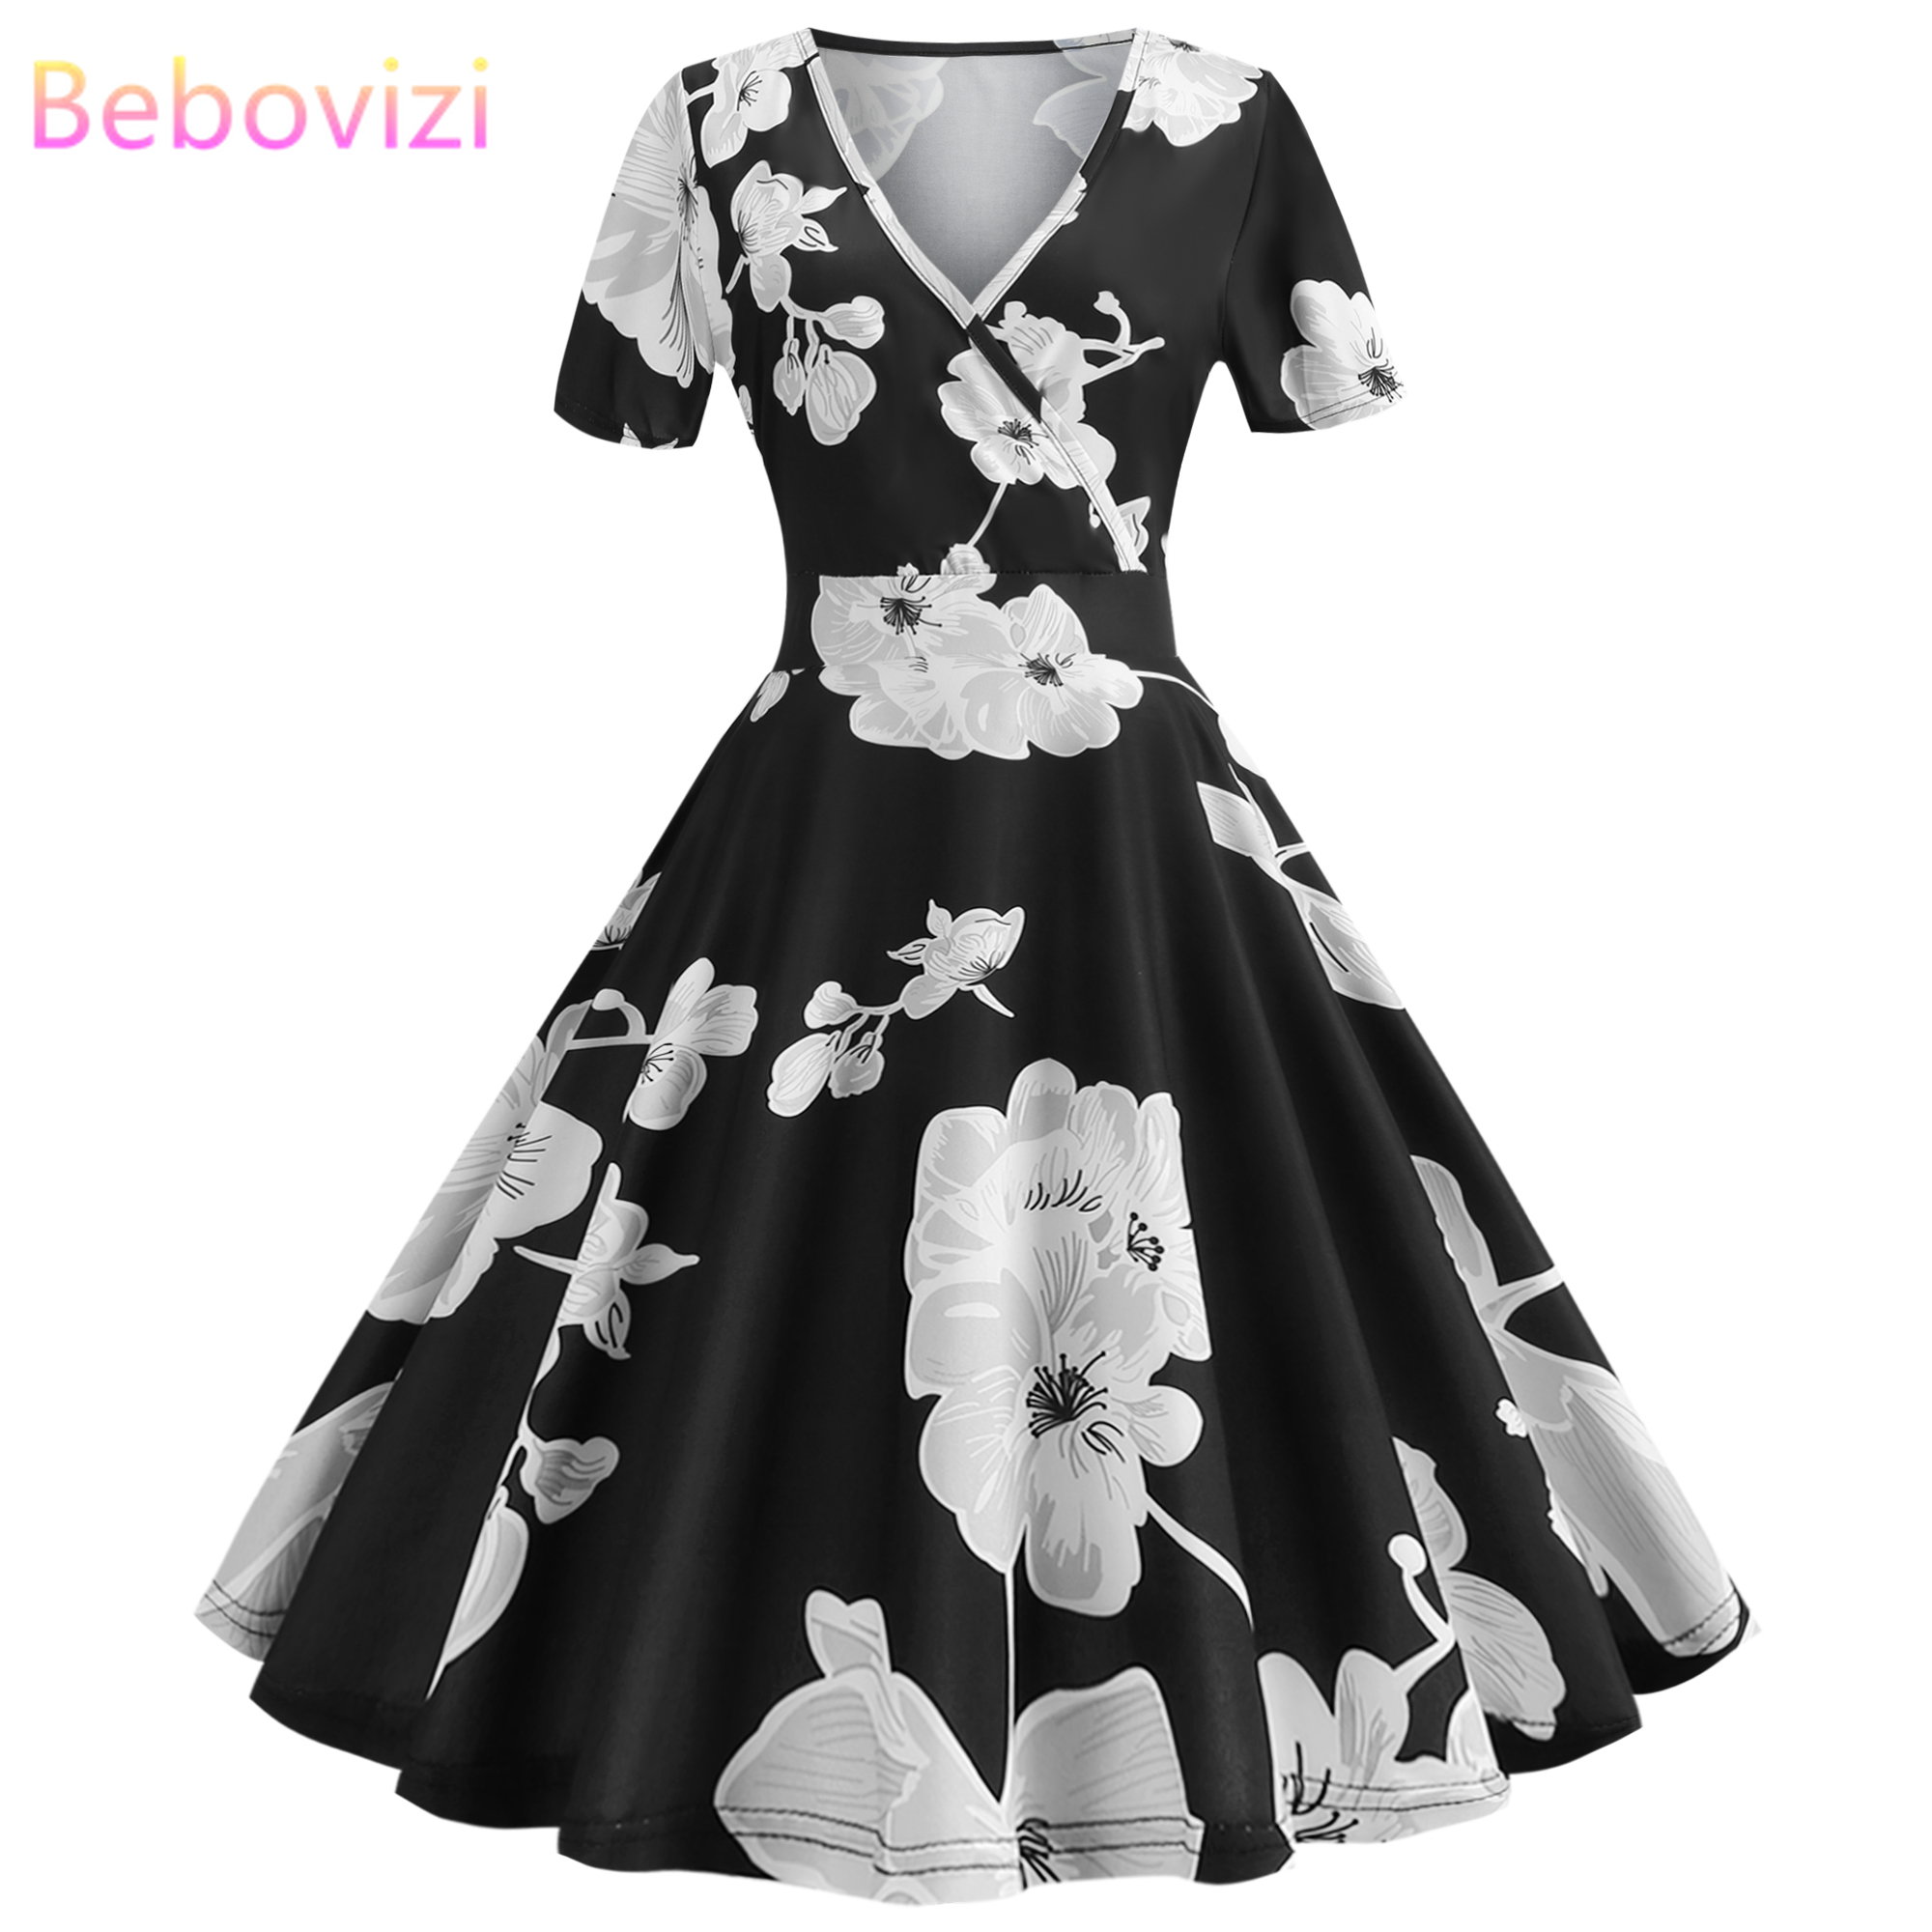 Bebovizi New Women 2019 Summer Dress Casual Elegant Office Plus Size Black Short Dresses Sexy Vintage Print Shein Party Vestidos